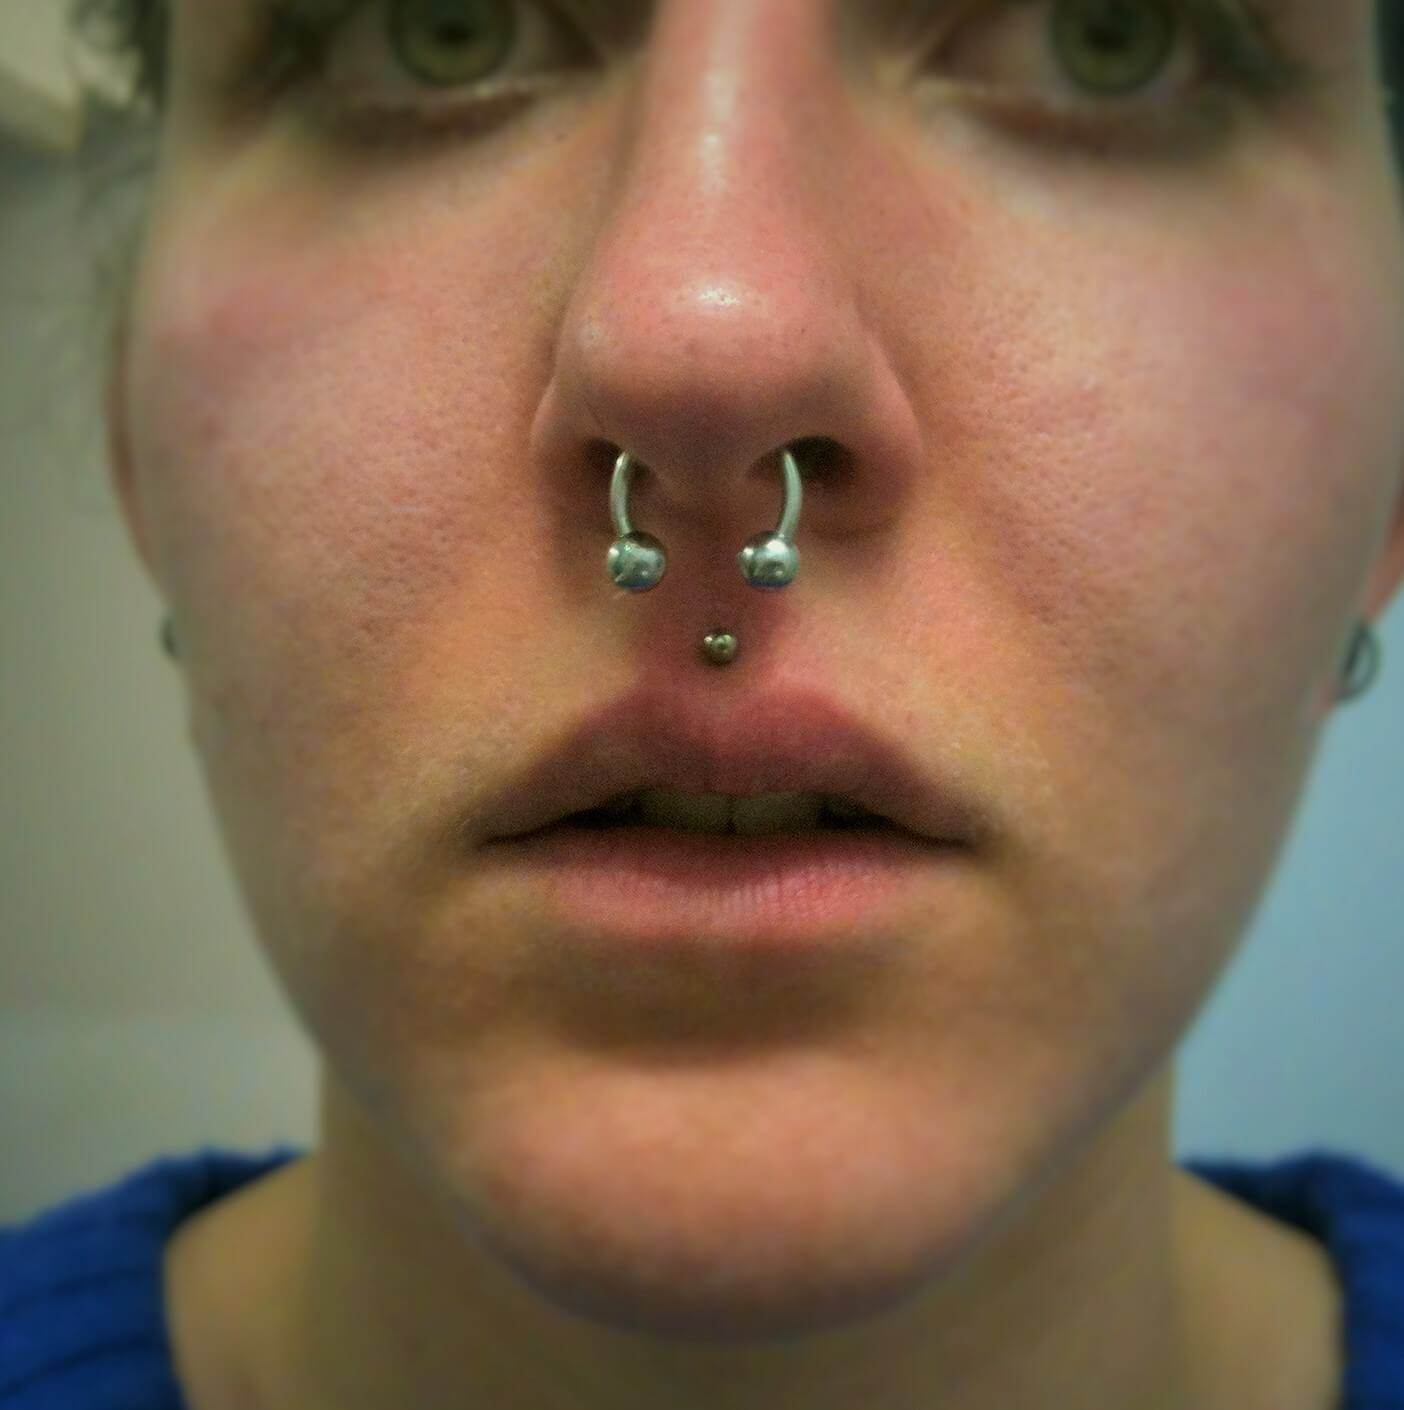 Medusa And Septum The Medusa Piercing Everything You Need To Know 2020 04 20